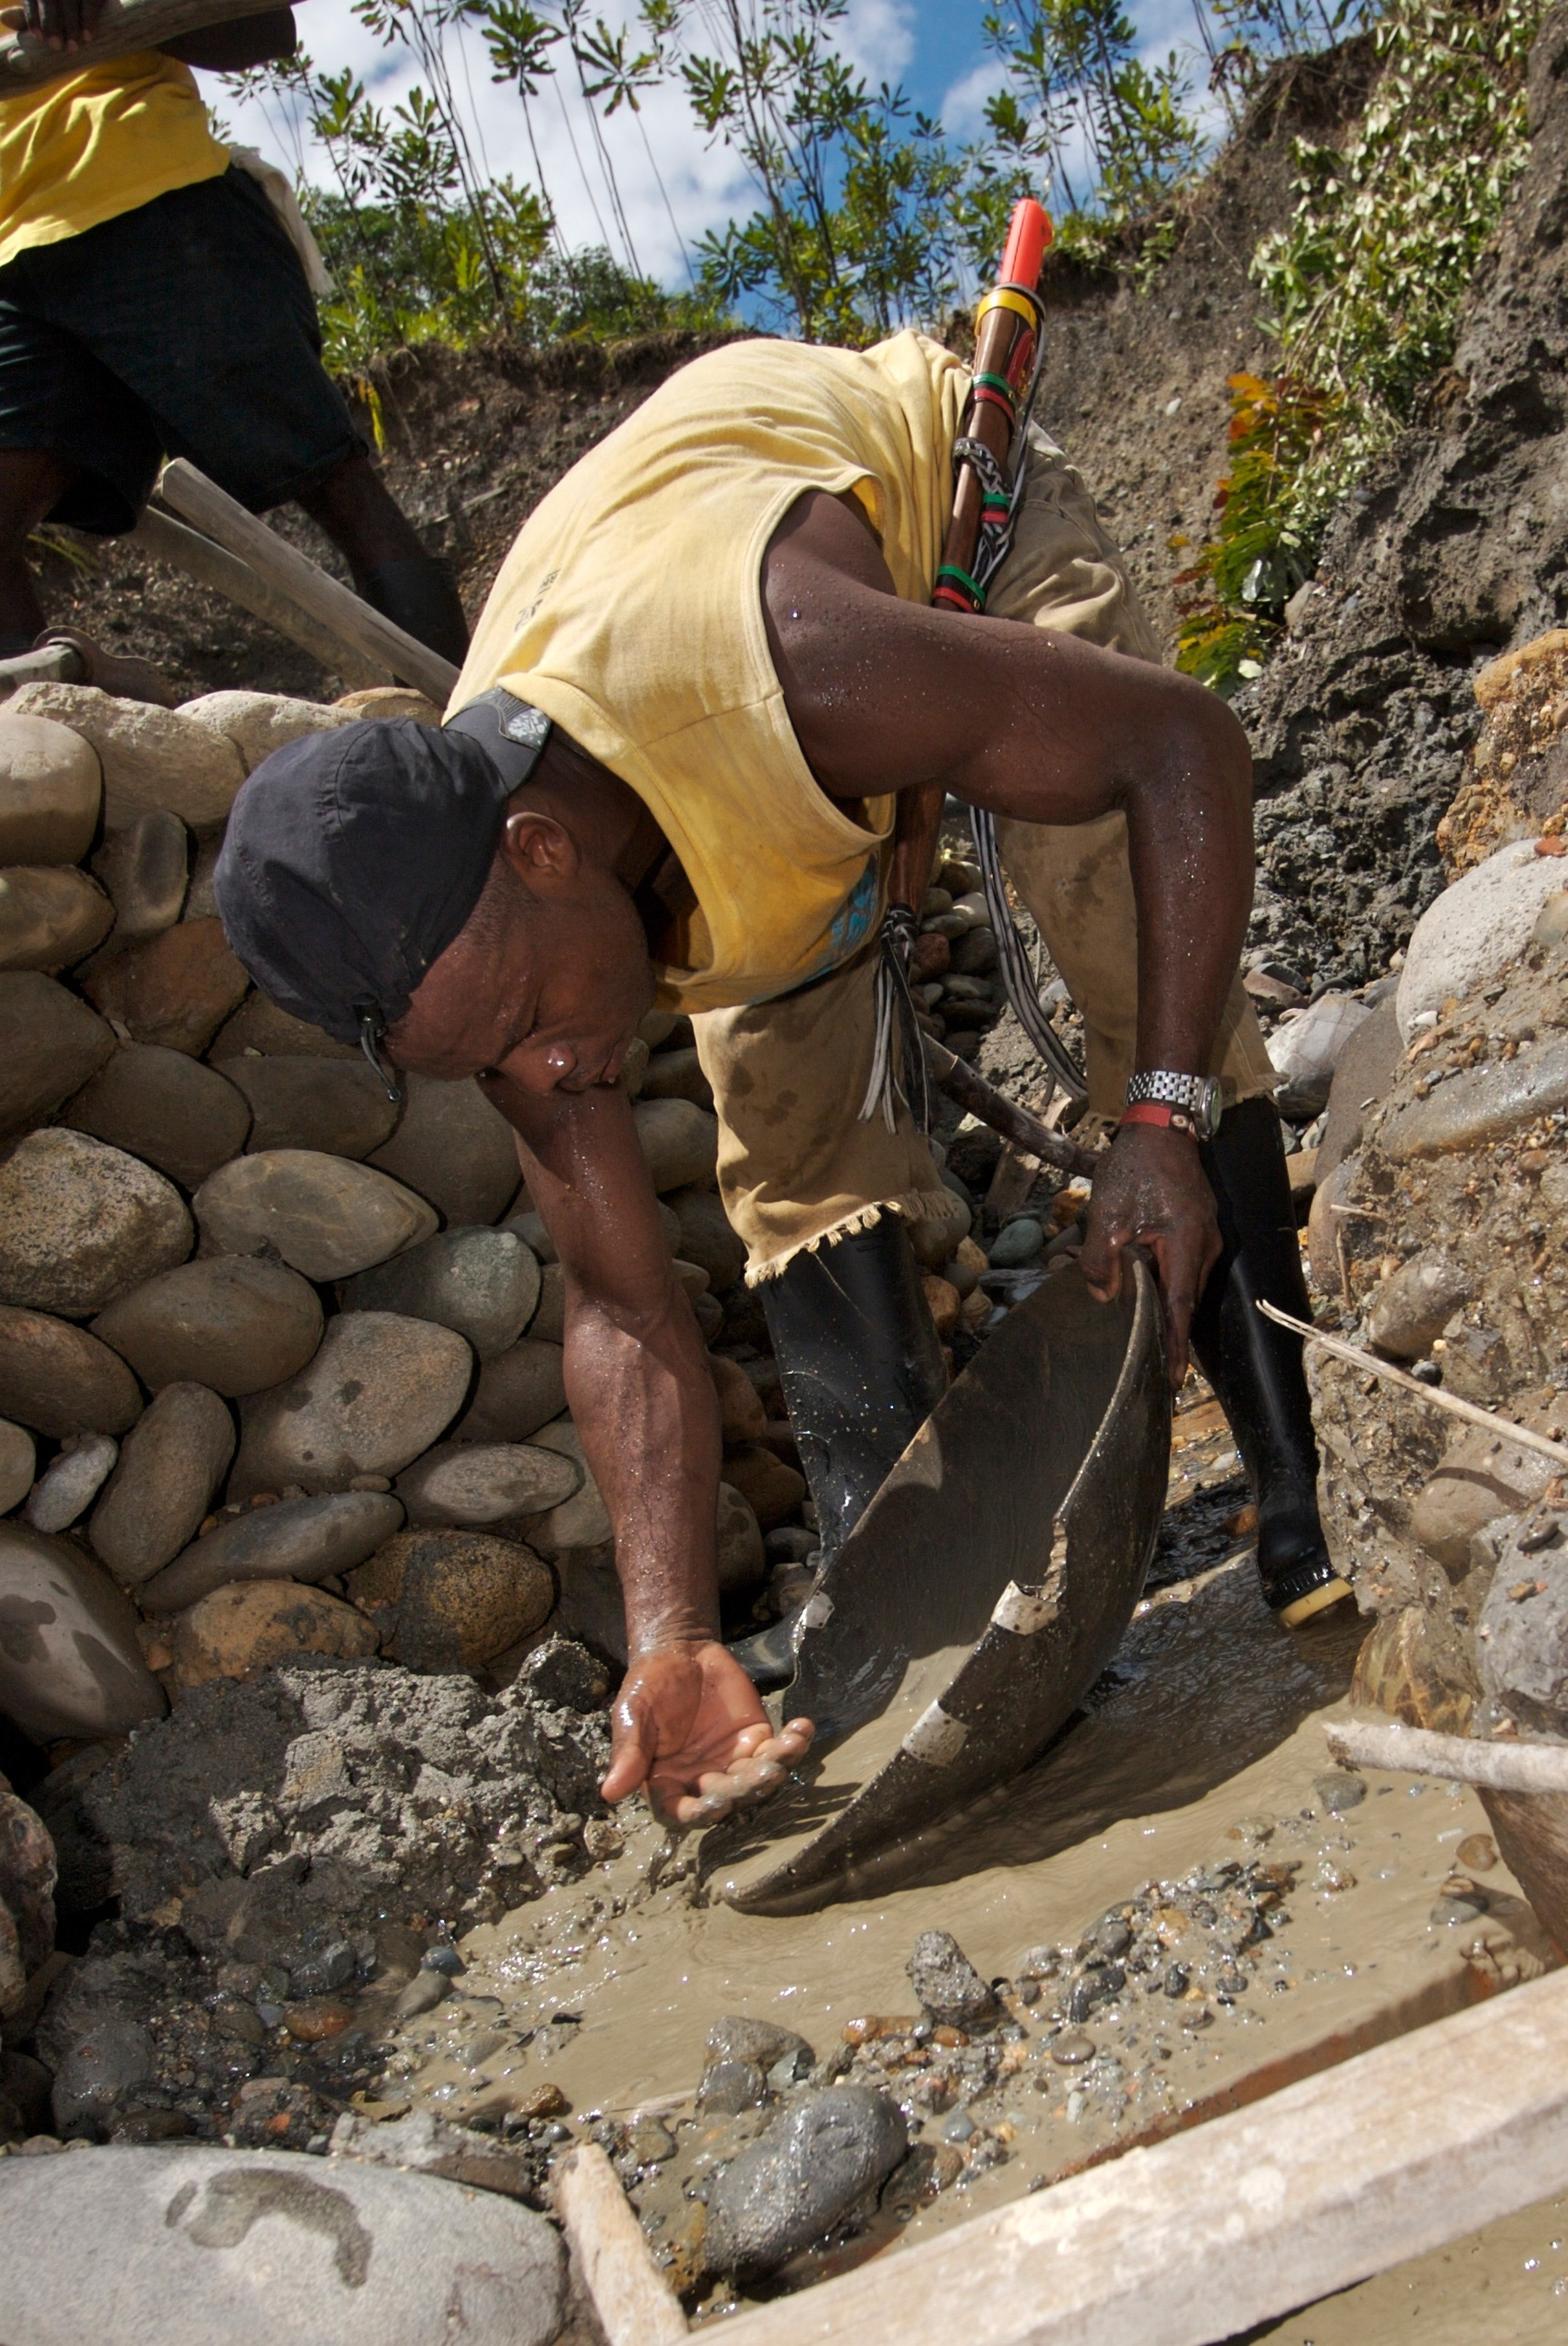 Panning-in-banked-trenches-to-reduce-soil-erosion.jpg